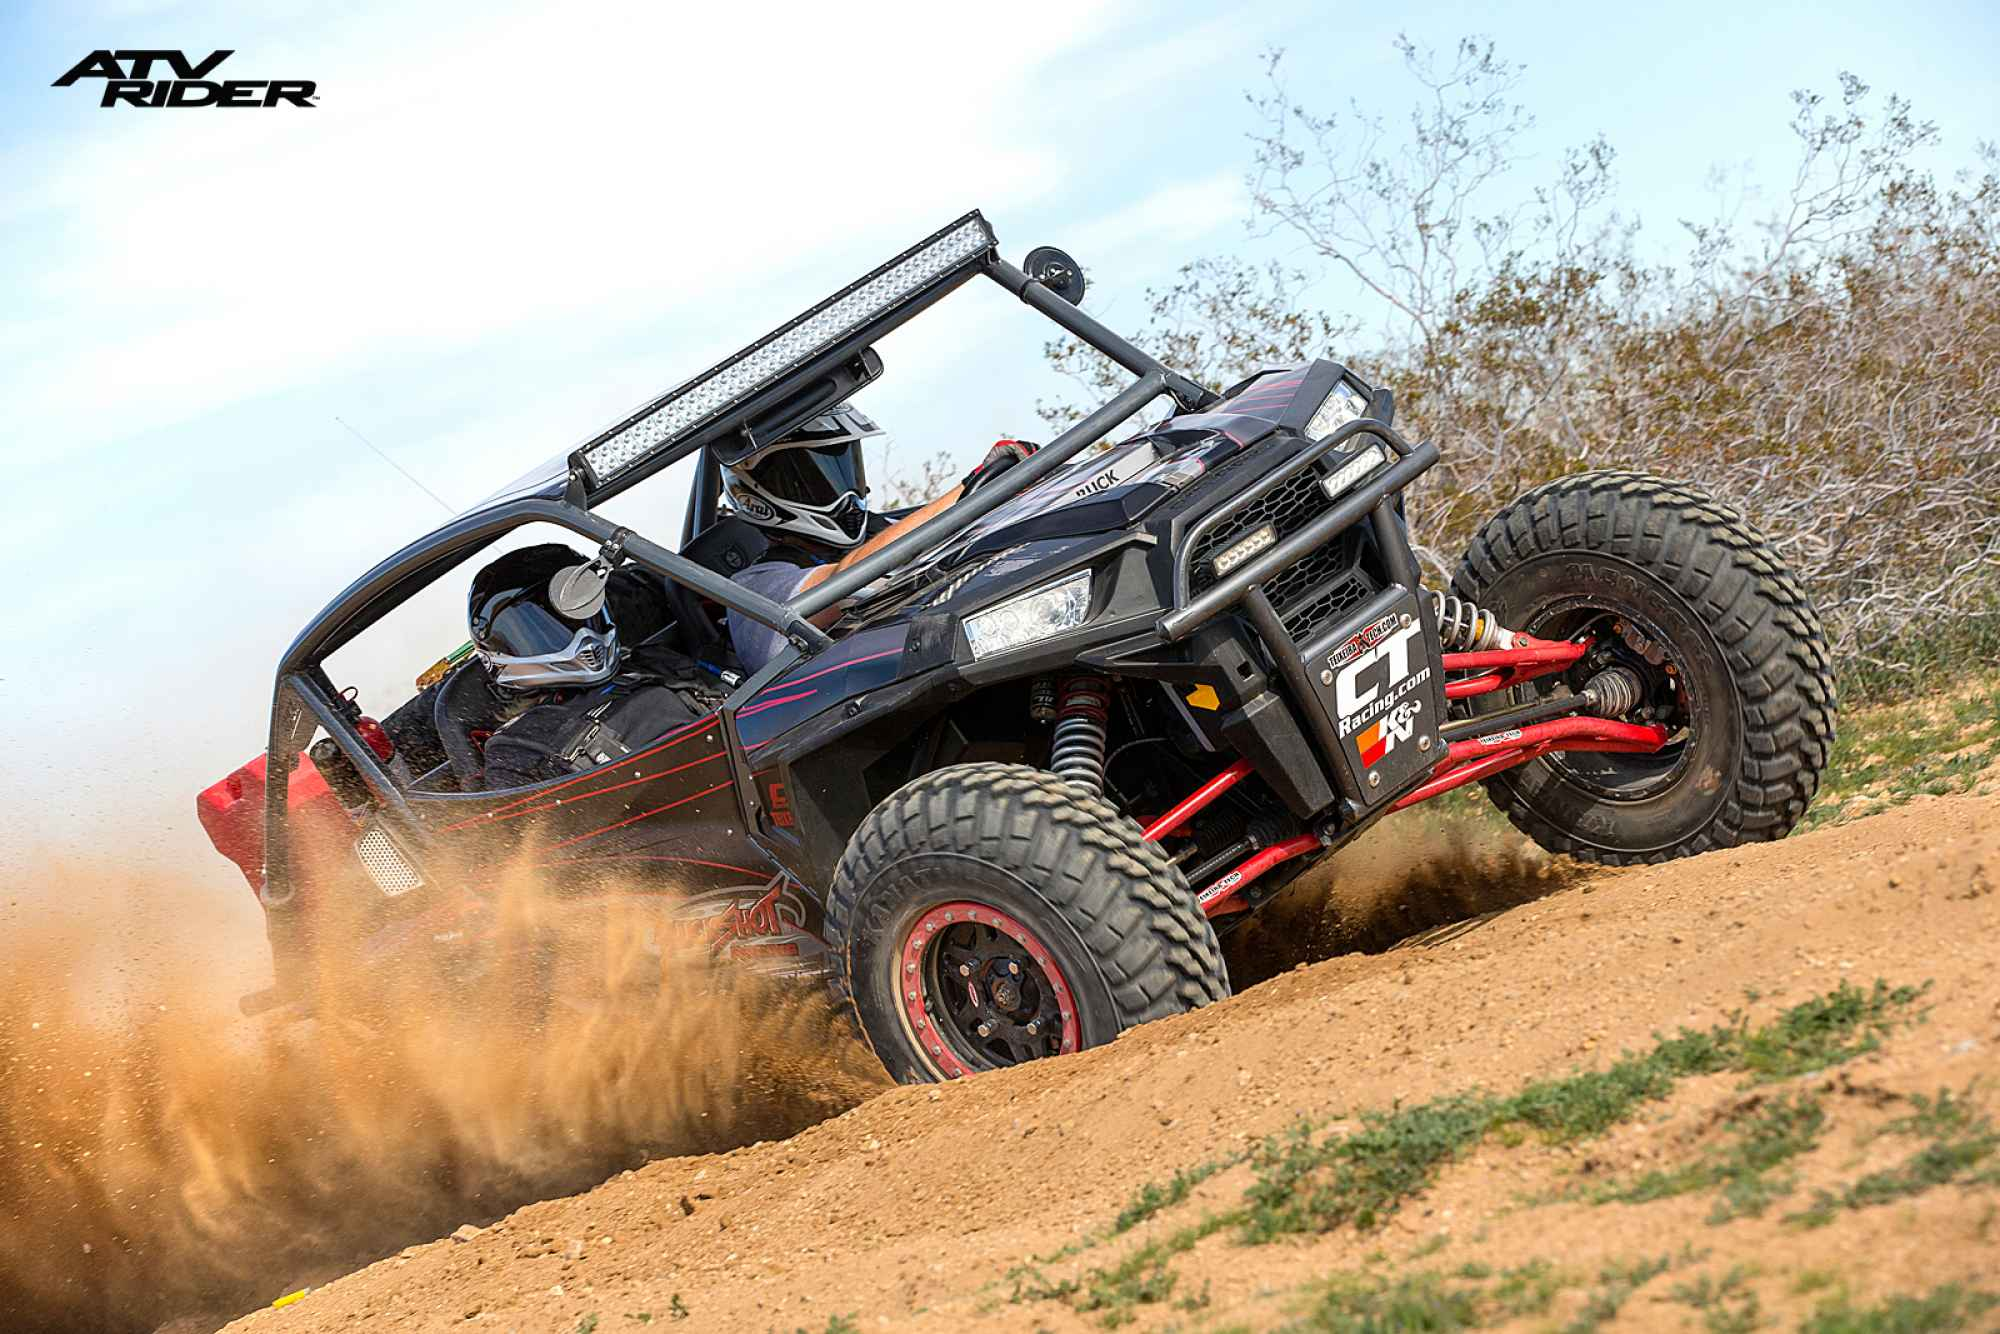 dy5t9794_0  ATV Rider: CT Racing's/Buckshot RZR XP 1000 VIDEO dy5t9794 0